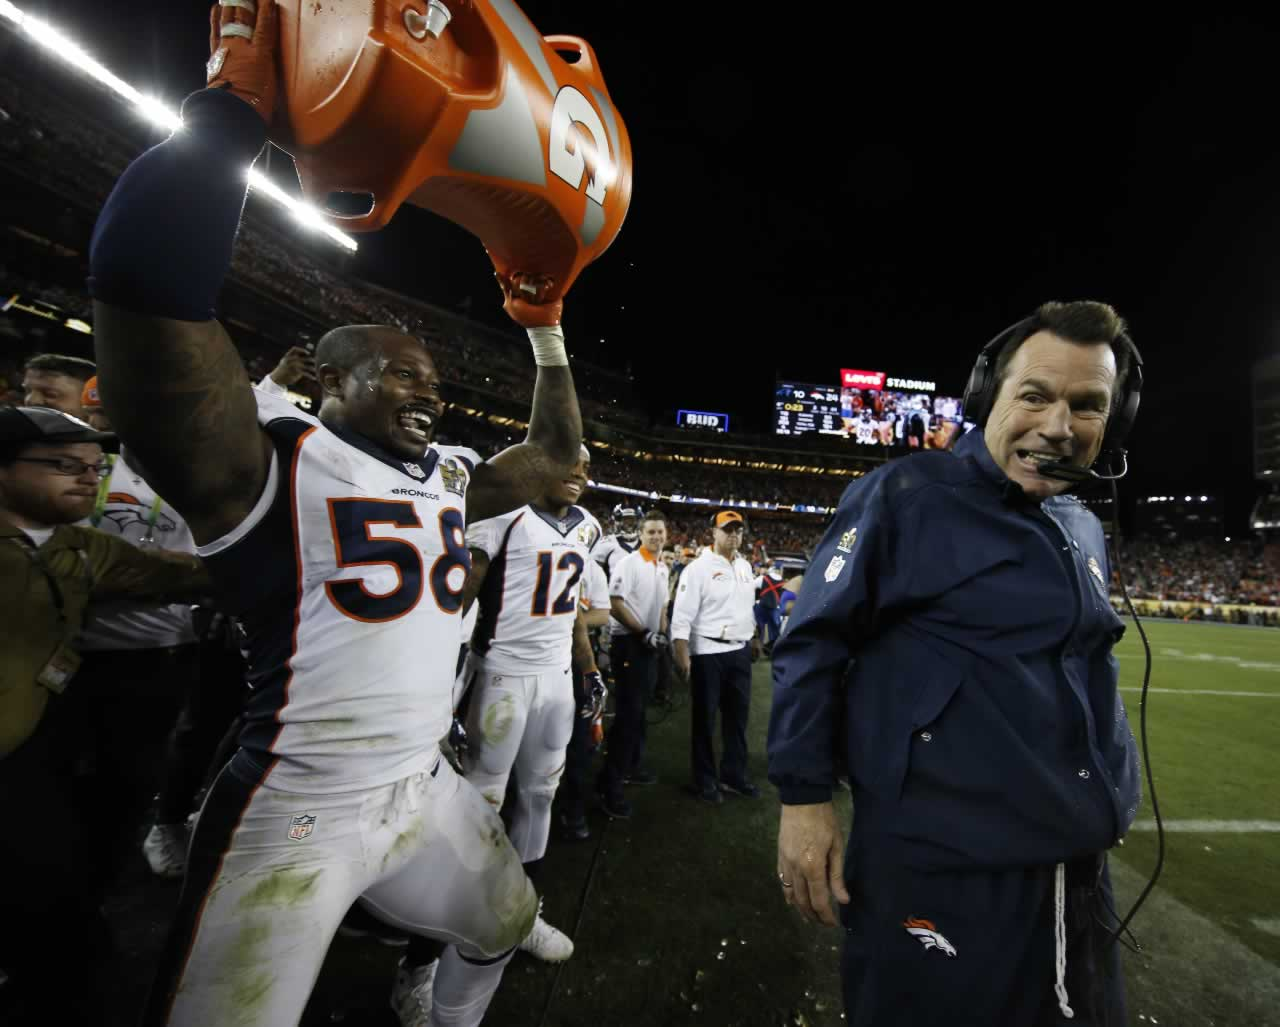 <div class='meta'><div class='origin-logo' data-origin='none'></div><span class='caption-text' data-credit='AP Photo/Matt Slocum'>Broncos head coach Gary Kubiak reacts after getting soaked with a sports drink by Von Miller after the NFL Super Bowl 50 football game Sunday, Feb. 7, 2016, in Santa Clara, Calif.</span></div>